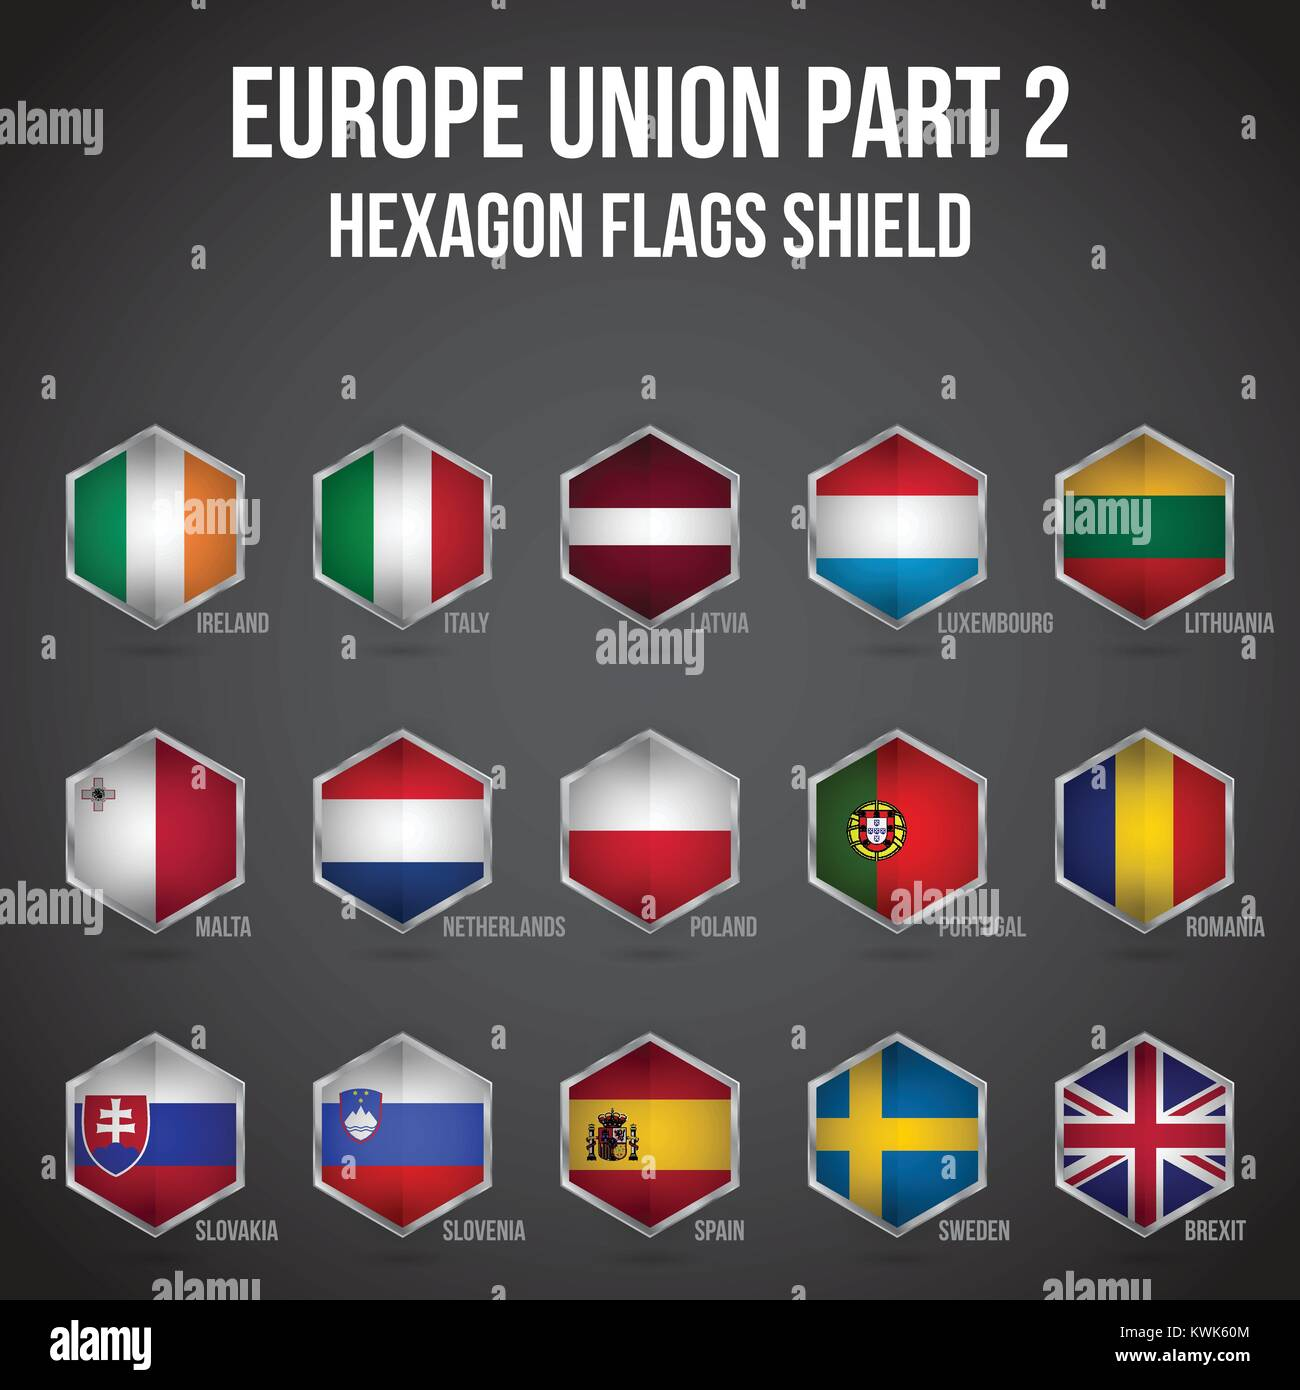 Europe Union Hexagon Flags Shield - Stock Image